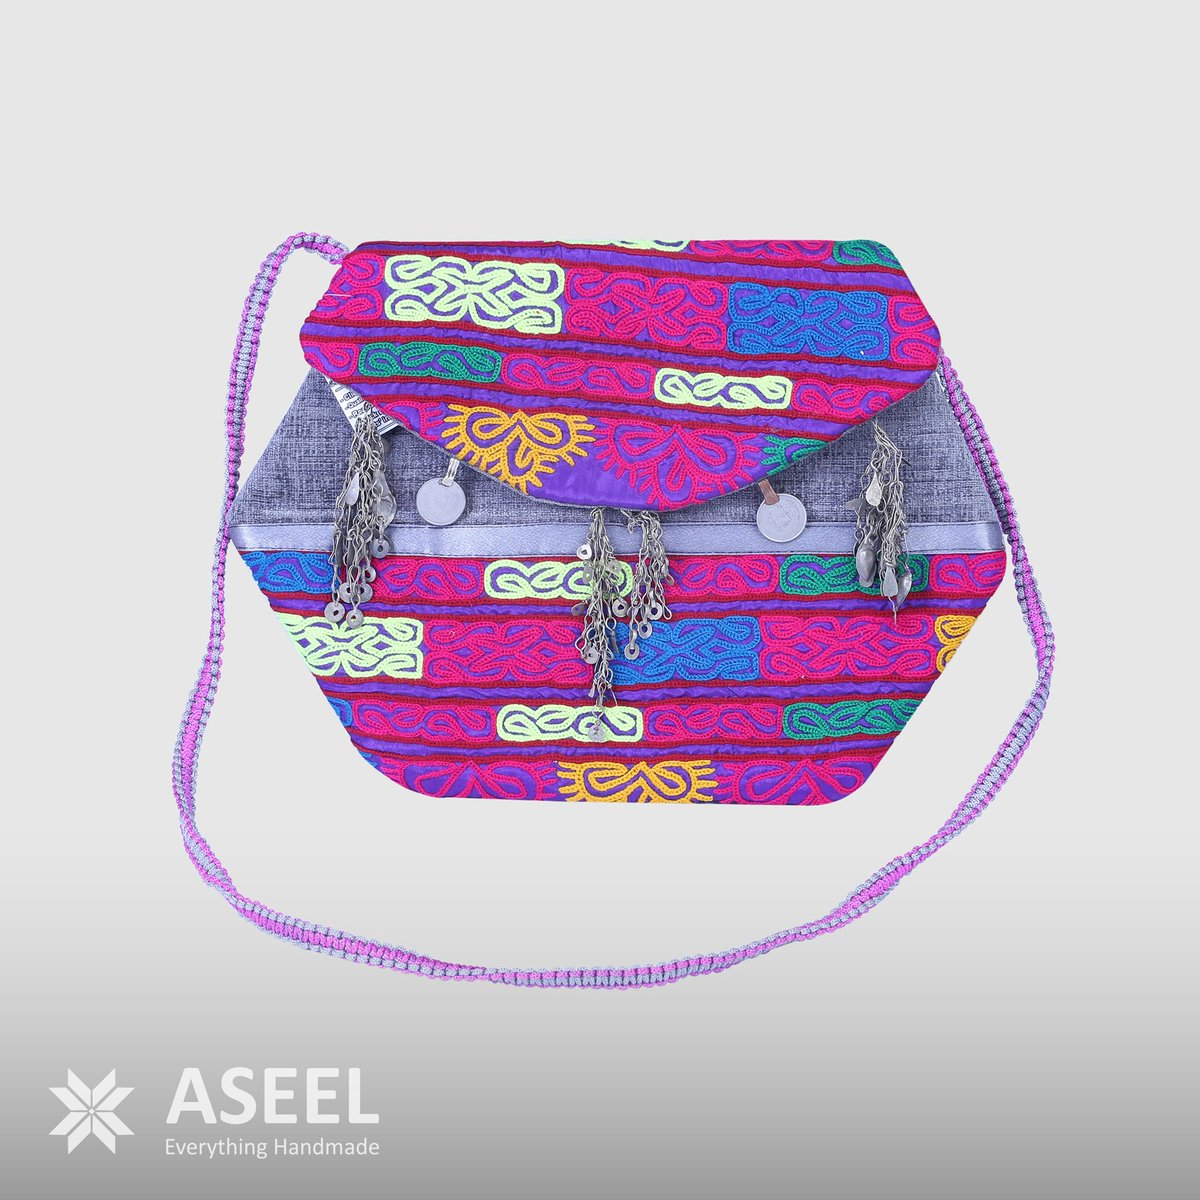 Another great multicolored clutch from Jama #Design. Blocks of all the colors of the #rainbow make this purse a bright addition to your accessory collection. Check it out on #ASEEL today!  #bags #bag #purses #instatags #clutch #fashionbag #bagslover #bagslovers #newcollection<br>http://pic.twitter.com/OMTSNH5vT6